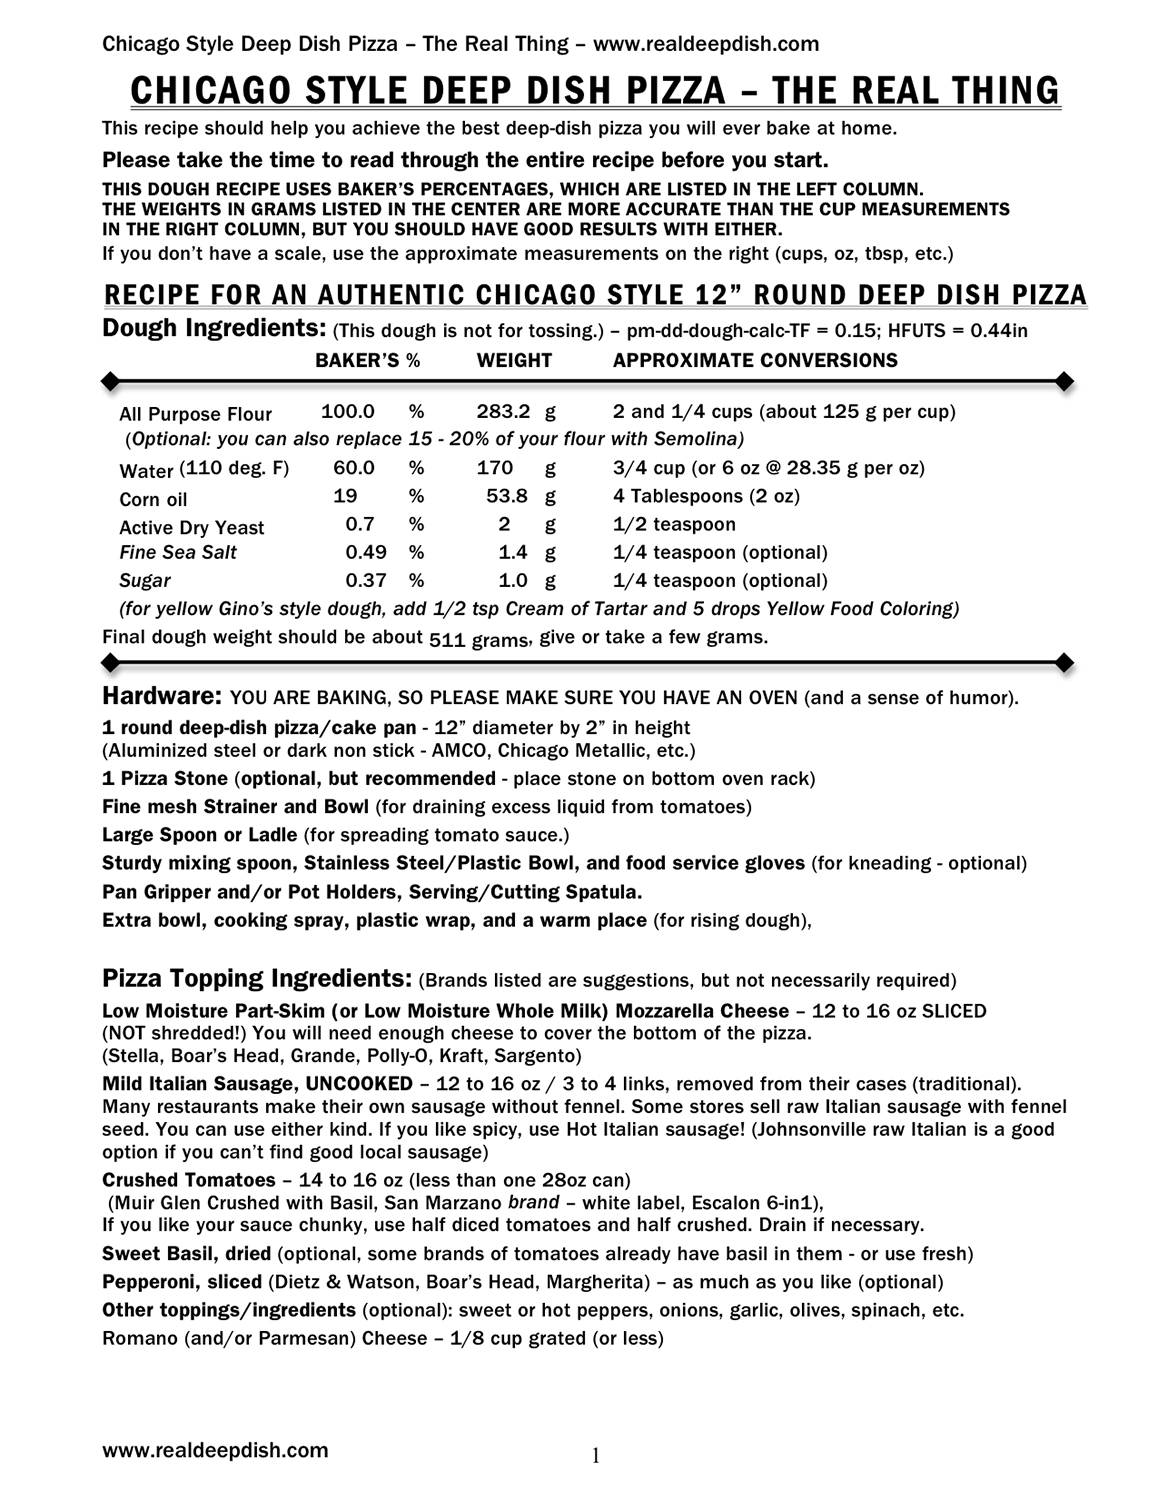 It's a Real Deep Dish Pizza Recipe! Click on the image to download the PDF